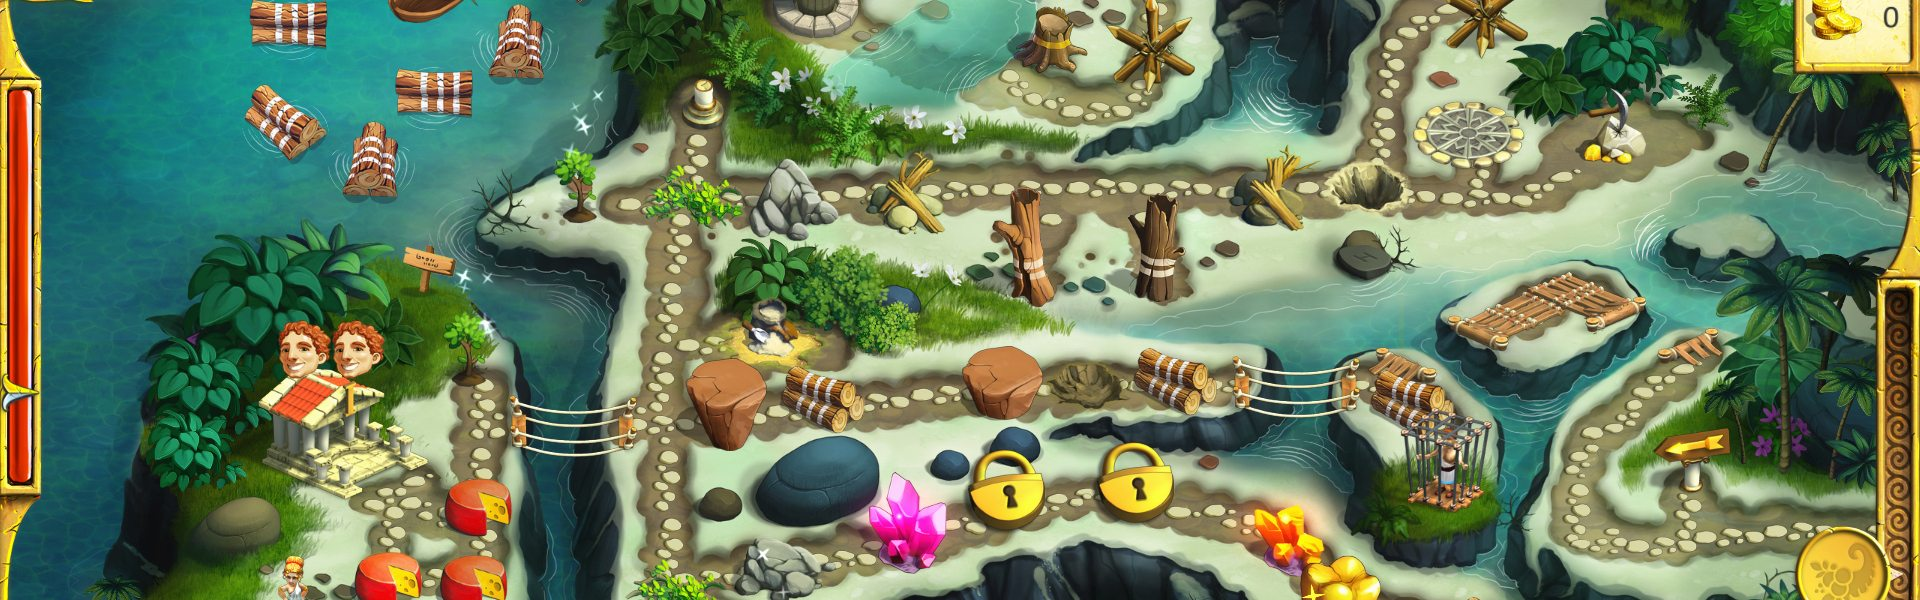 12 Labours of Hercules IV: Mother Nature Steam Key EUROPE